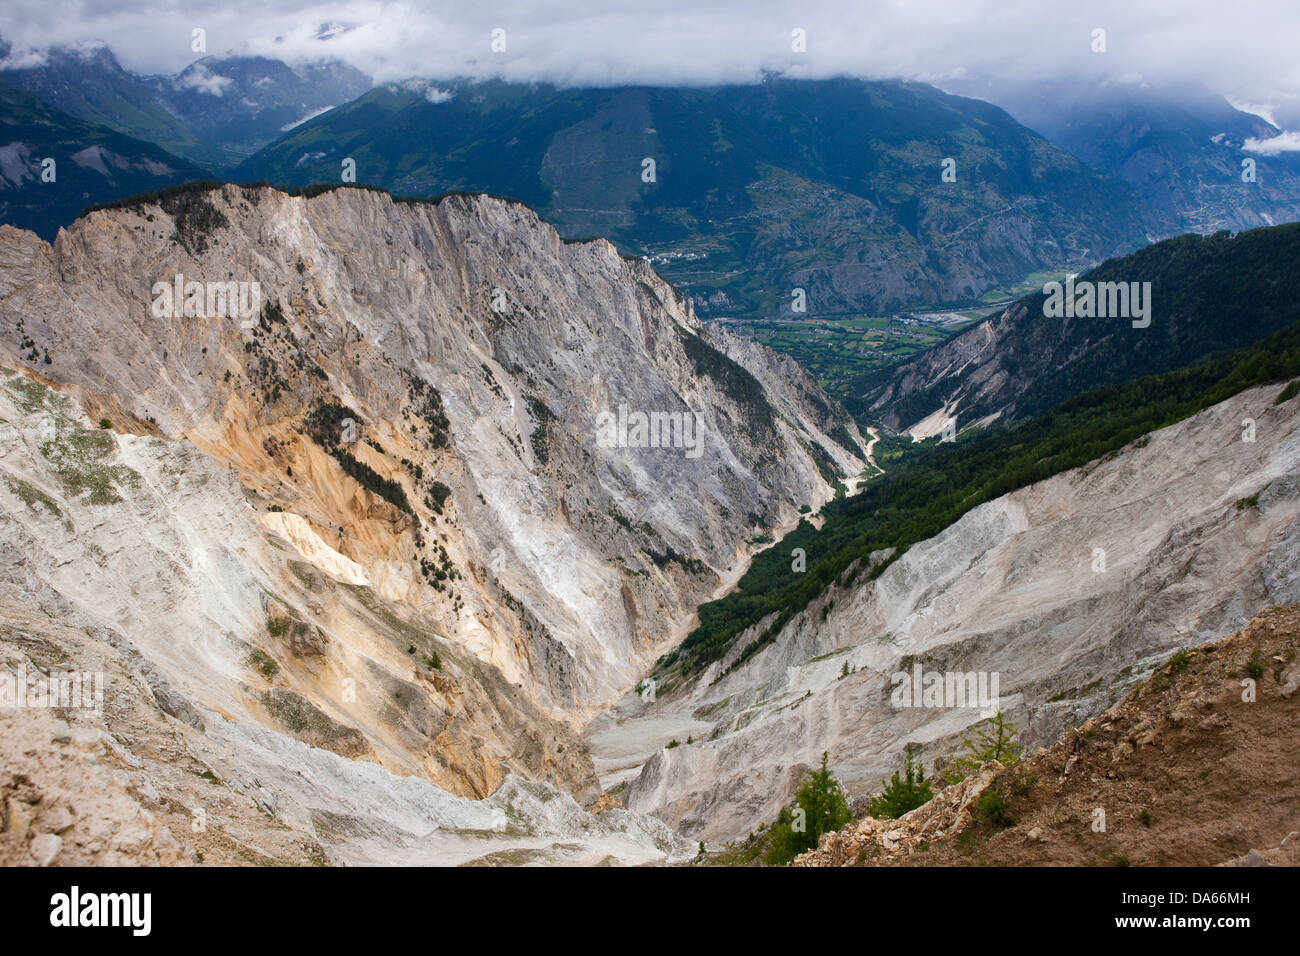 Ditch Ill, Rhone valley, cliff, rocks, cliffs, stone, mountains, gulch, canyon, canton, Valais, Switzerland, Europe, - Stock Image